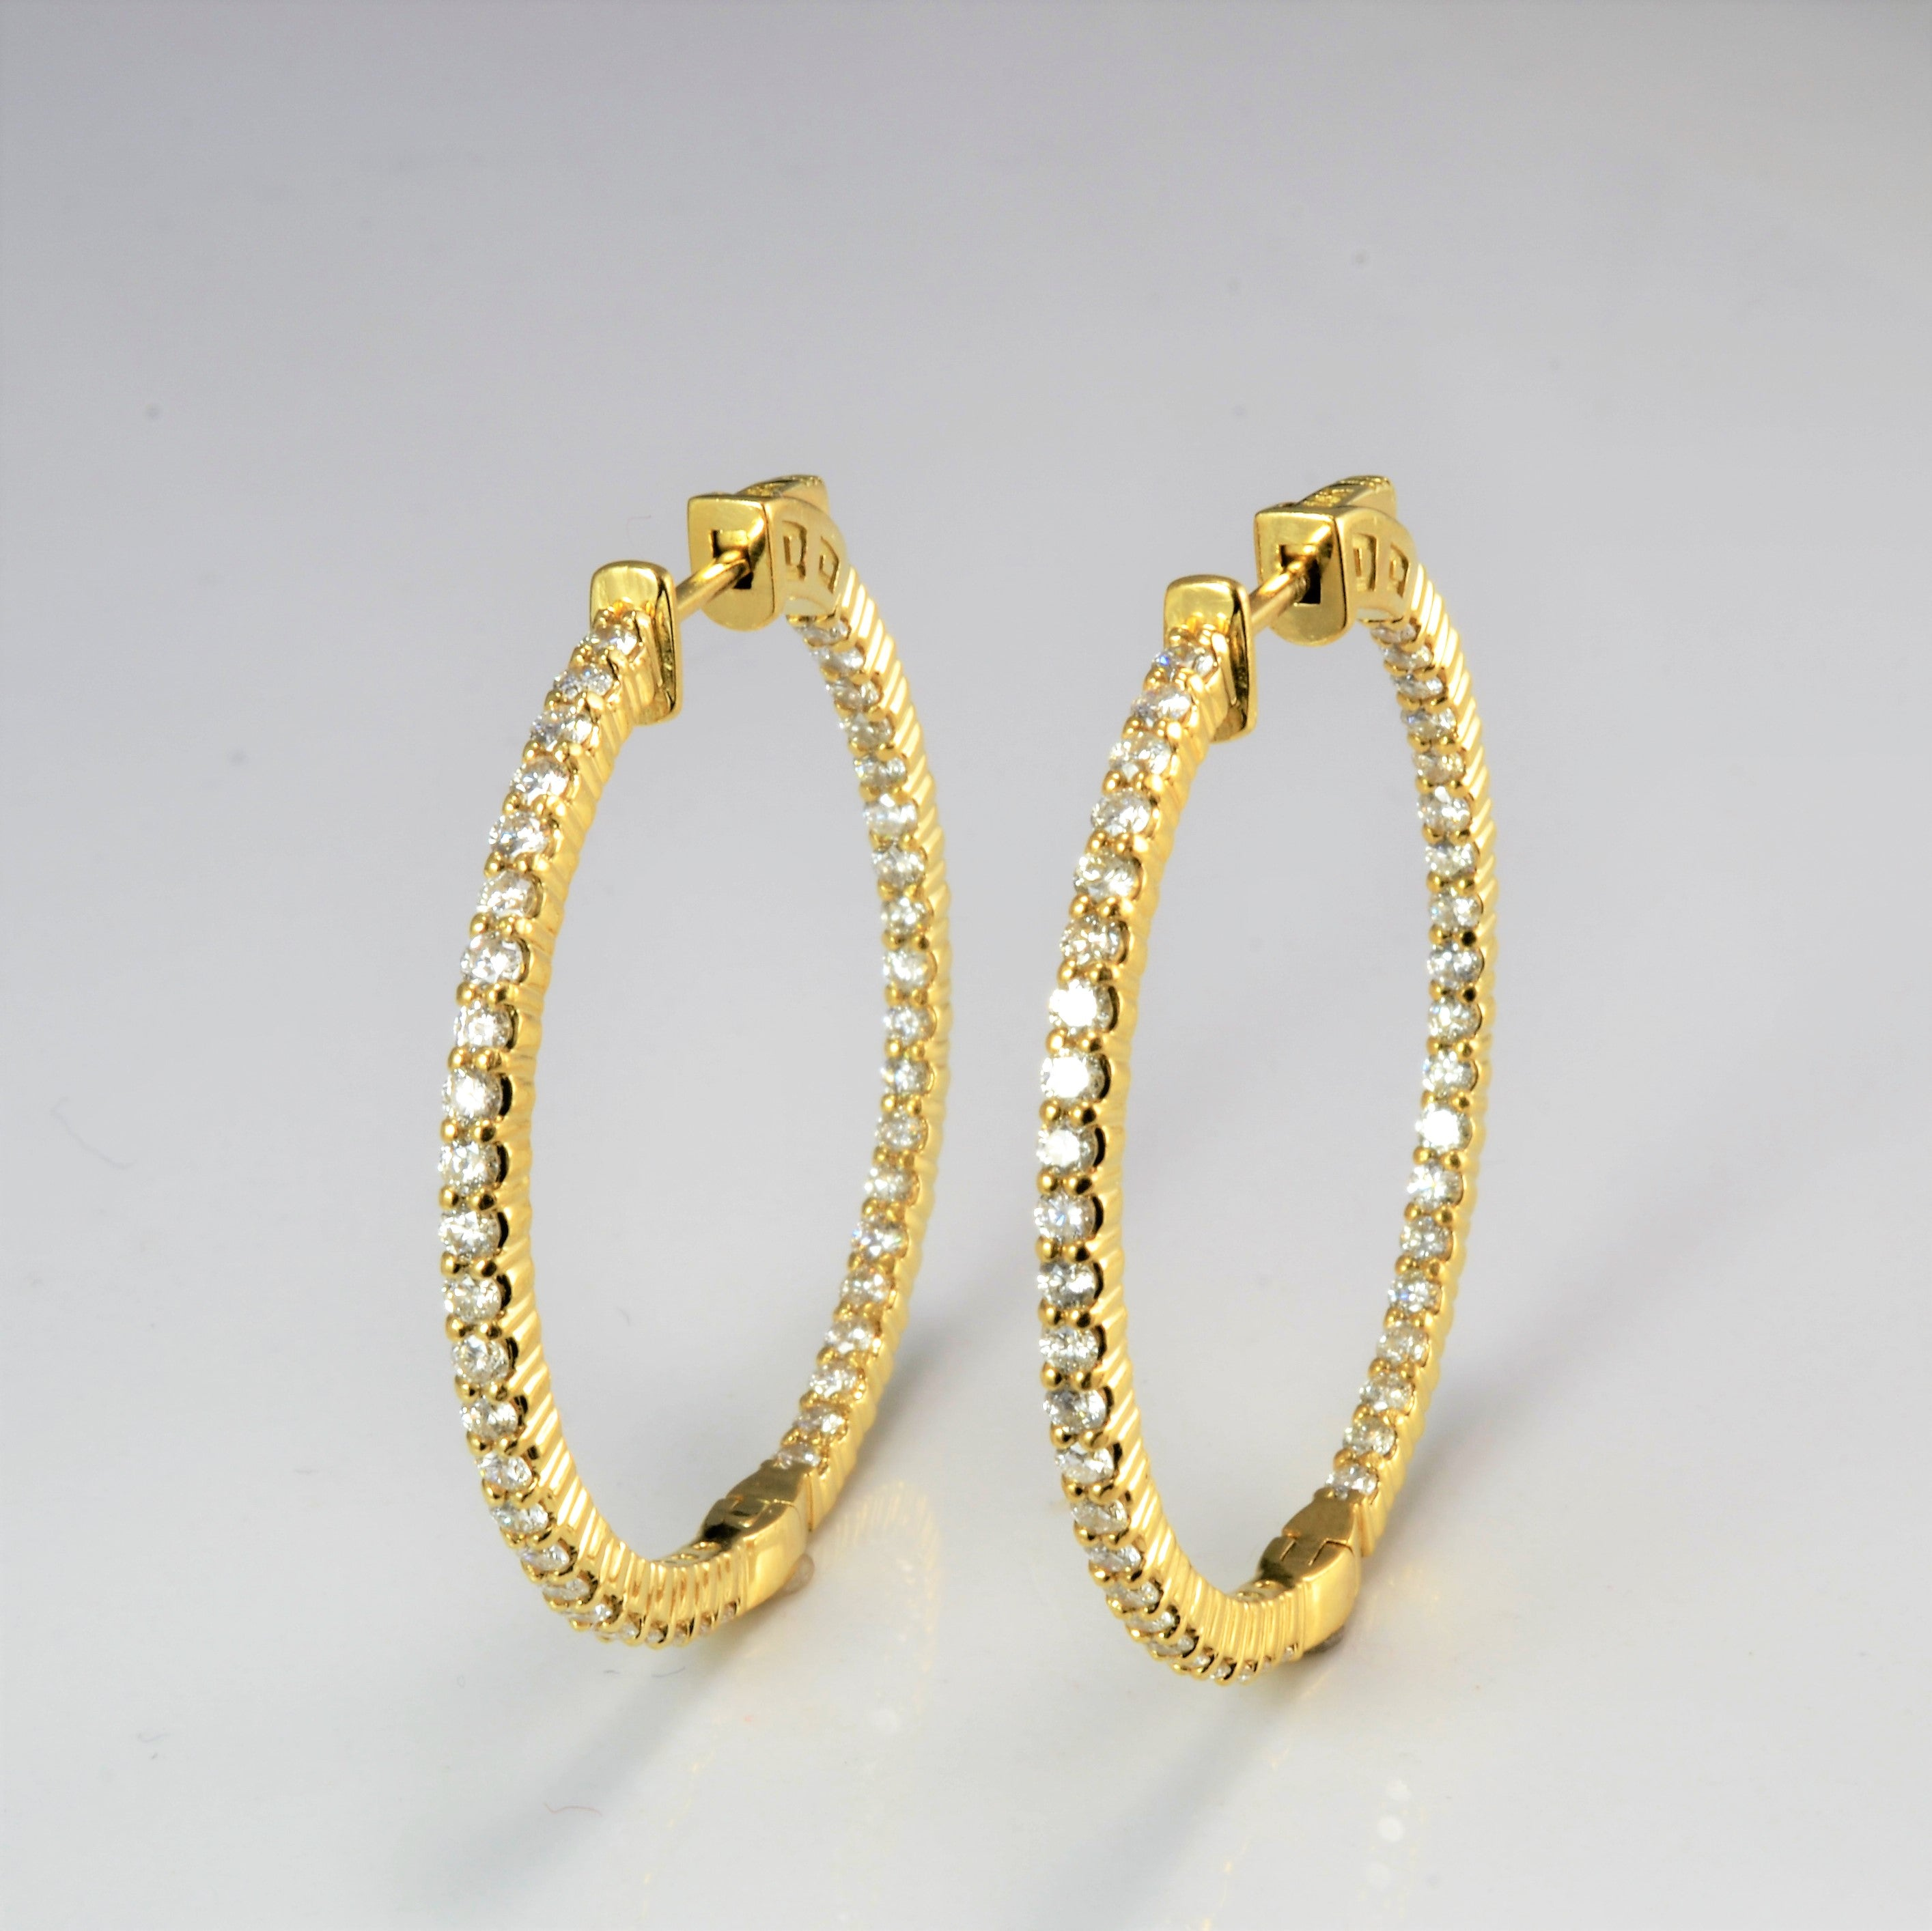 Pave Set Double Side Diamond Hoop Earrings | 1.72 ctw |